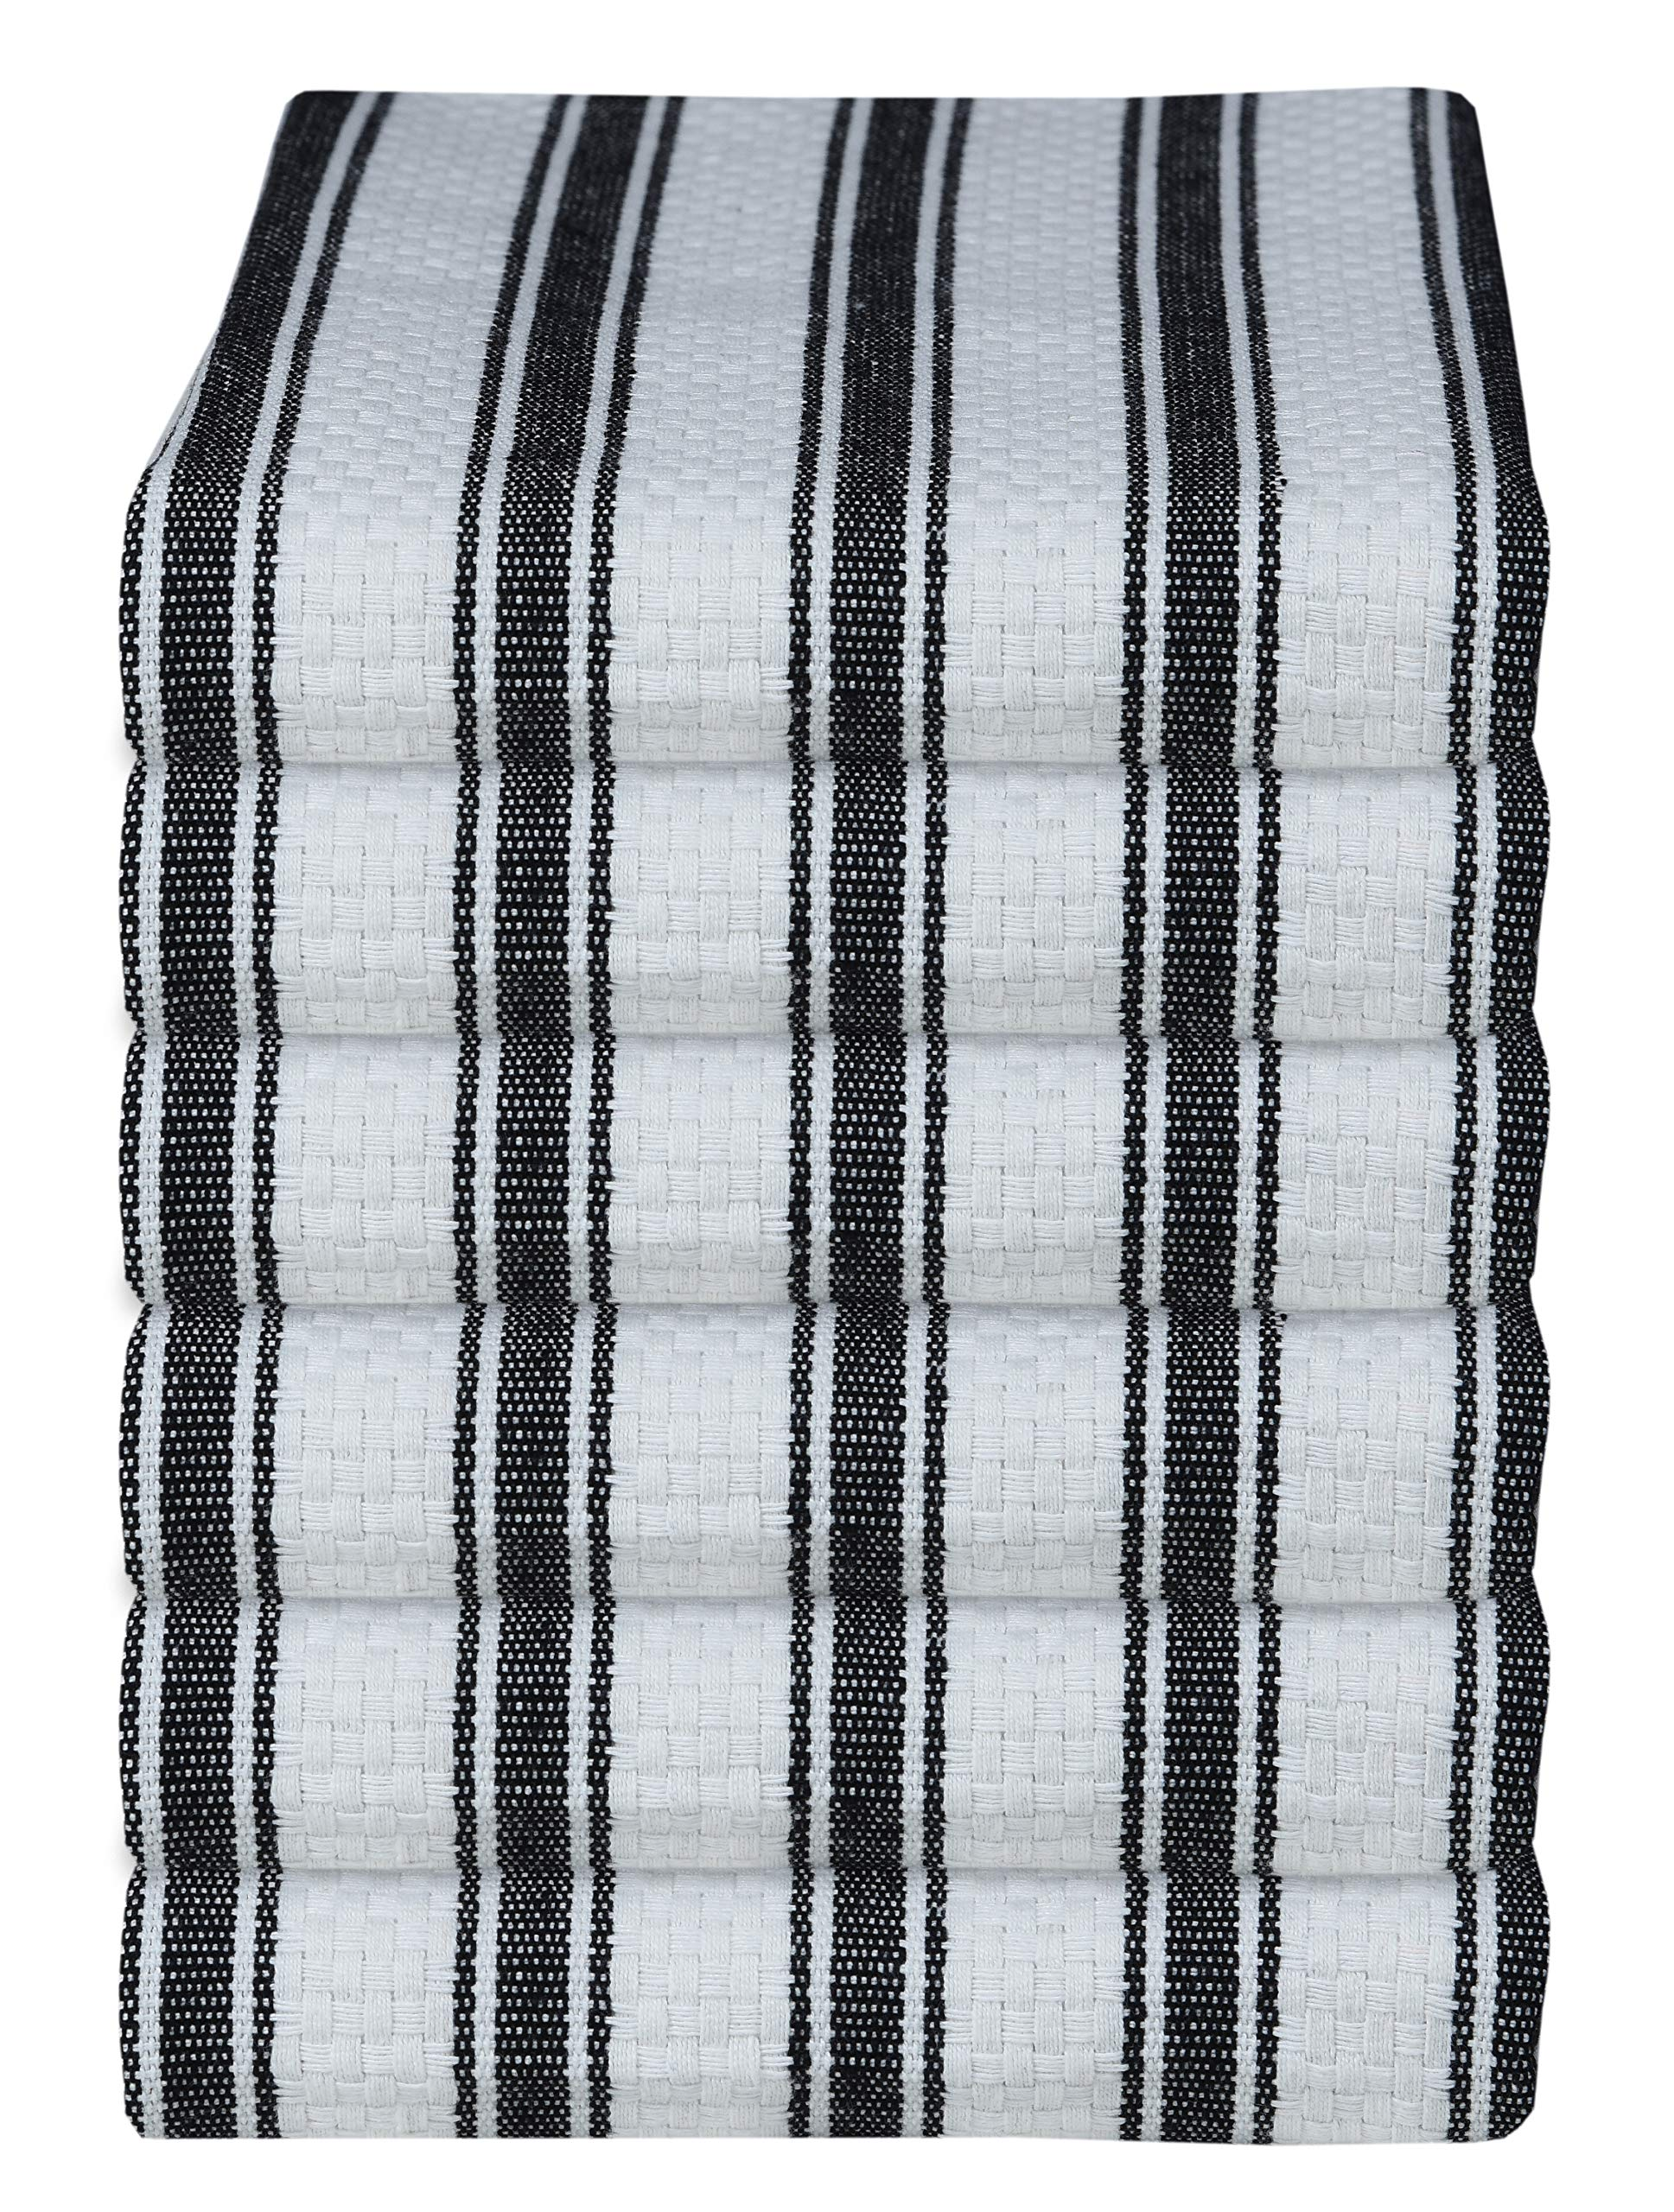 GLAMBURG 100% Cotton Kitchen Towels and Dish Cloth Sets, 6 Pack 18x28 Basket Weave Stripe Dish Towels, Tea Towels, Bar Towels, Cleaning Towels, Highly Absorbent Dishcloth, Kitchen Towel Set - Black